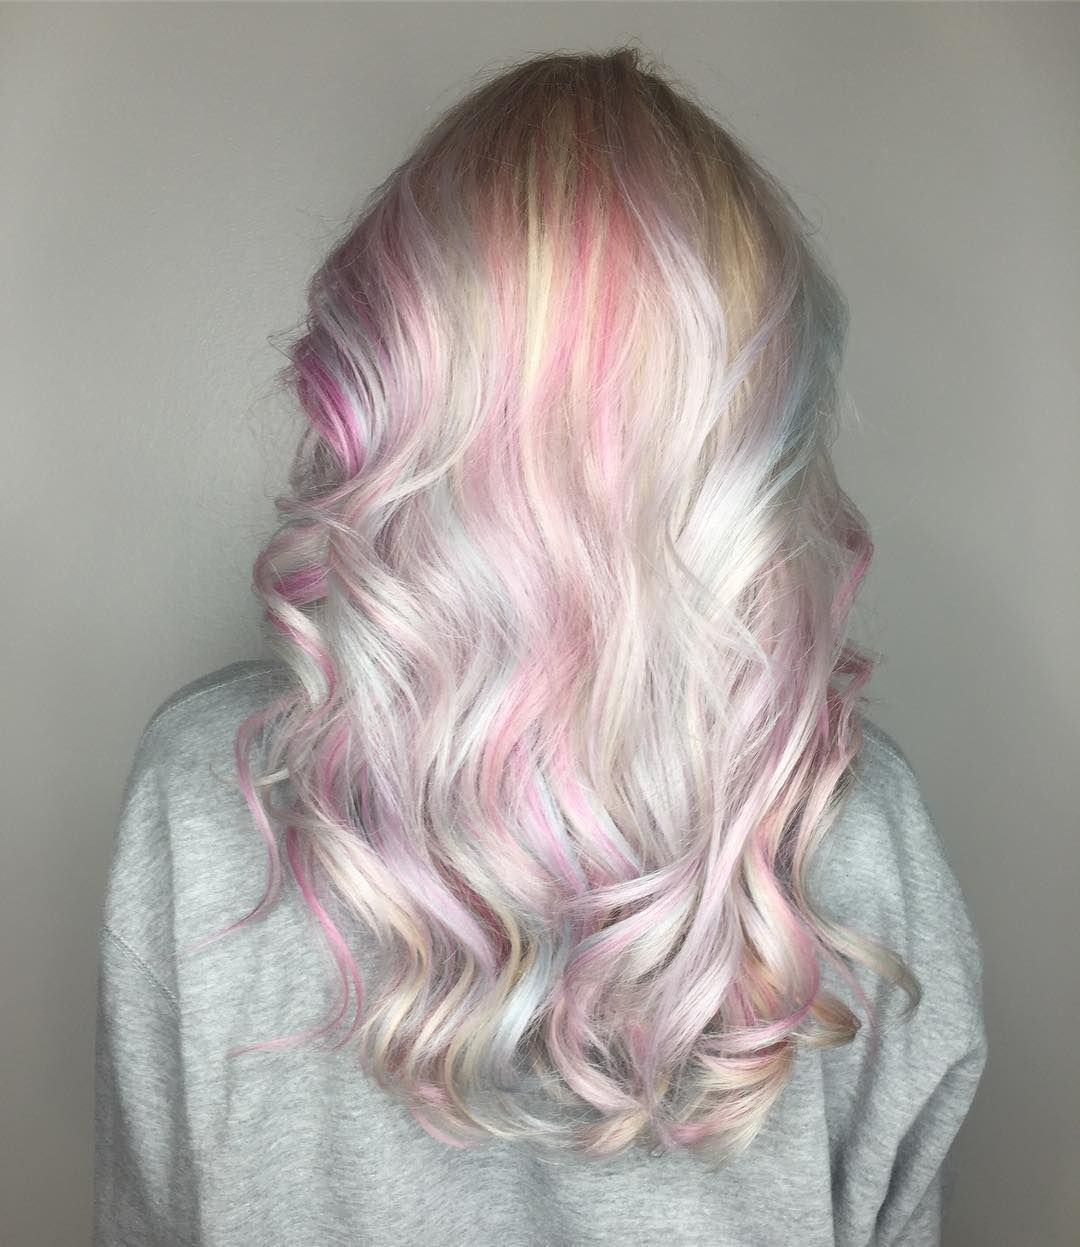 114 Likes, 10 Comments Colorado Springs Hair Stylist